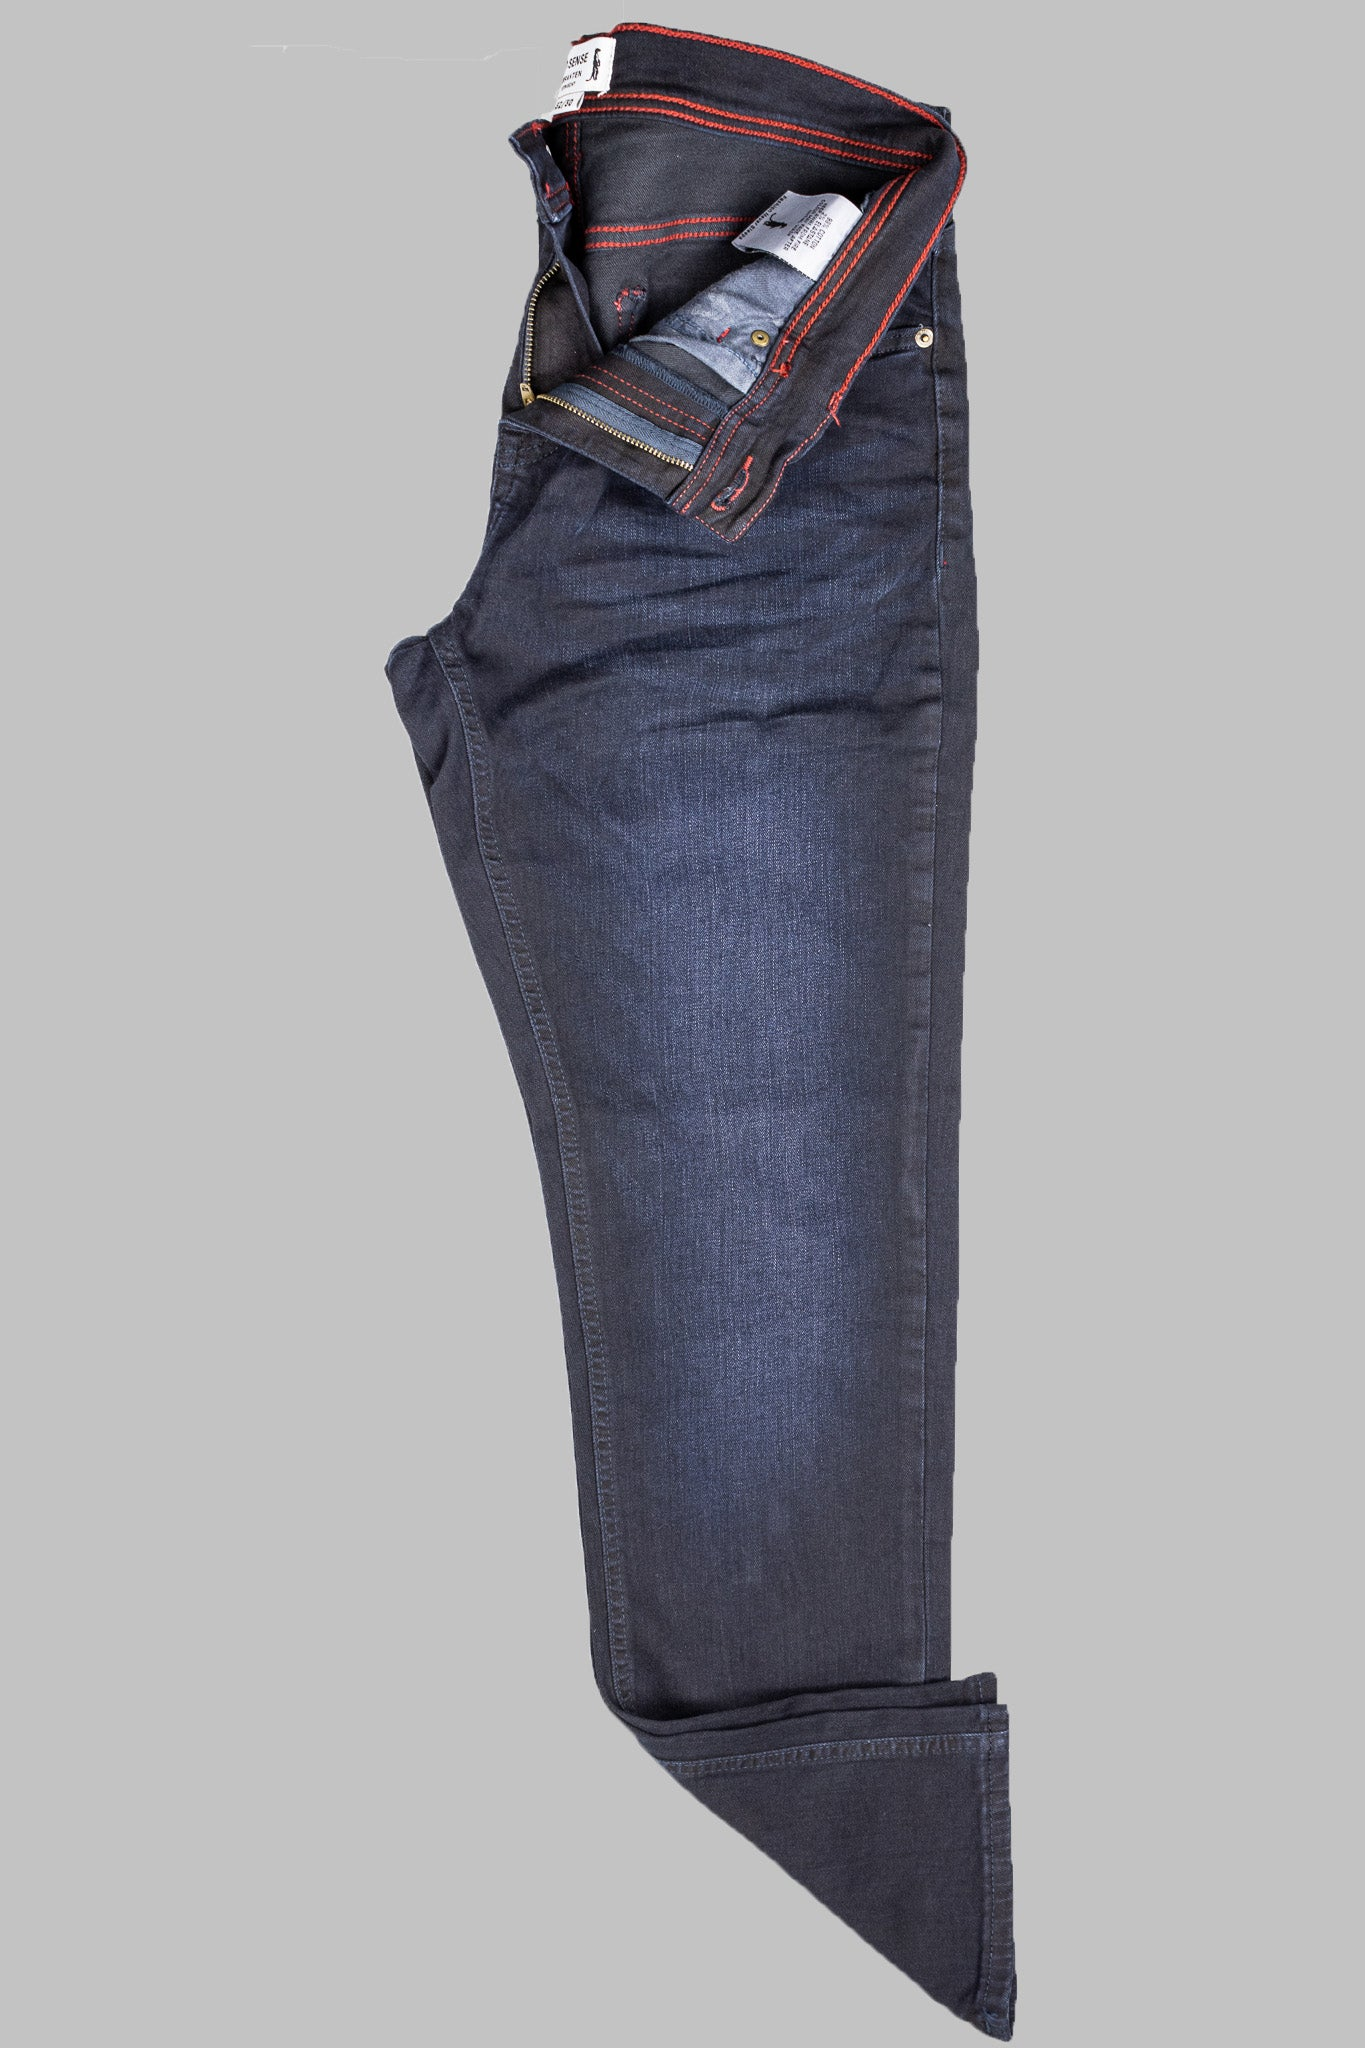 6th Sense Braxton | Regular Fit Stretch Jean